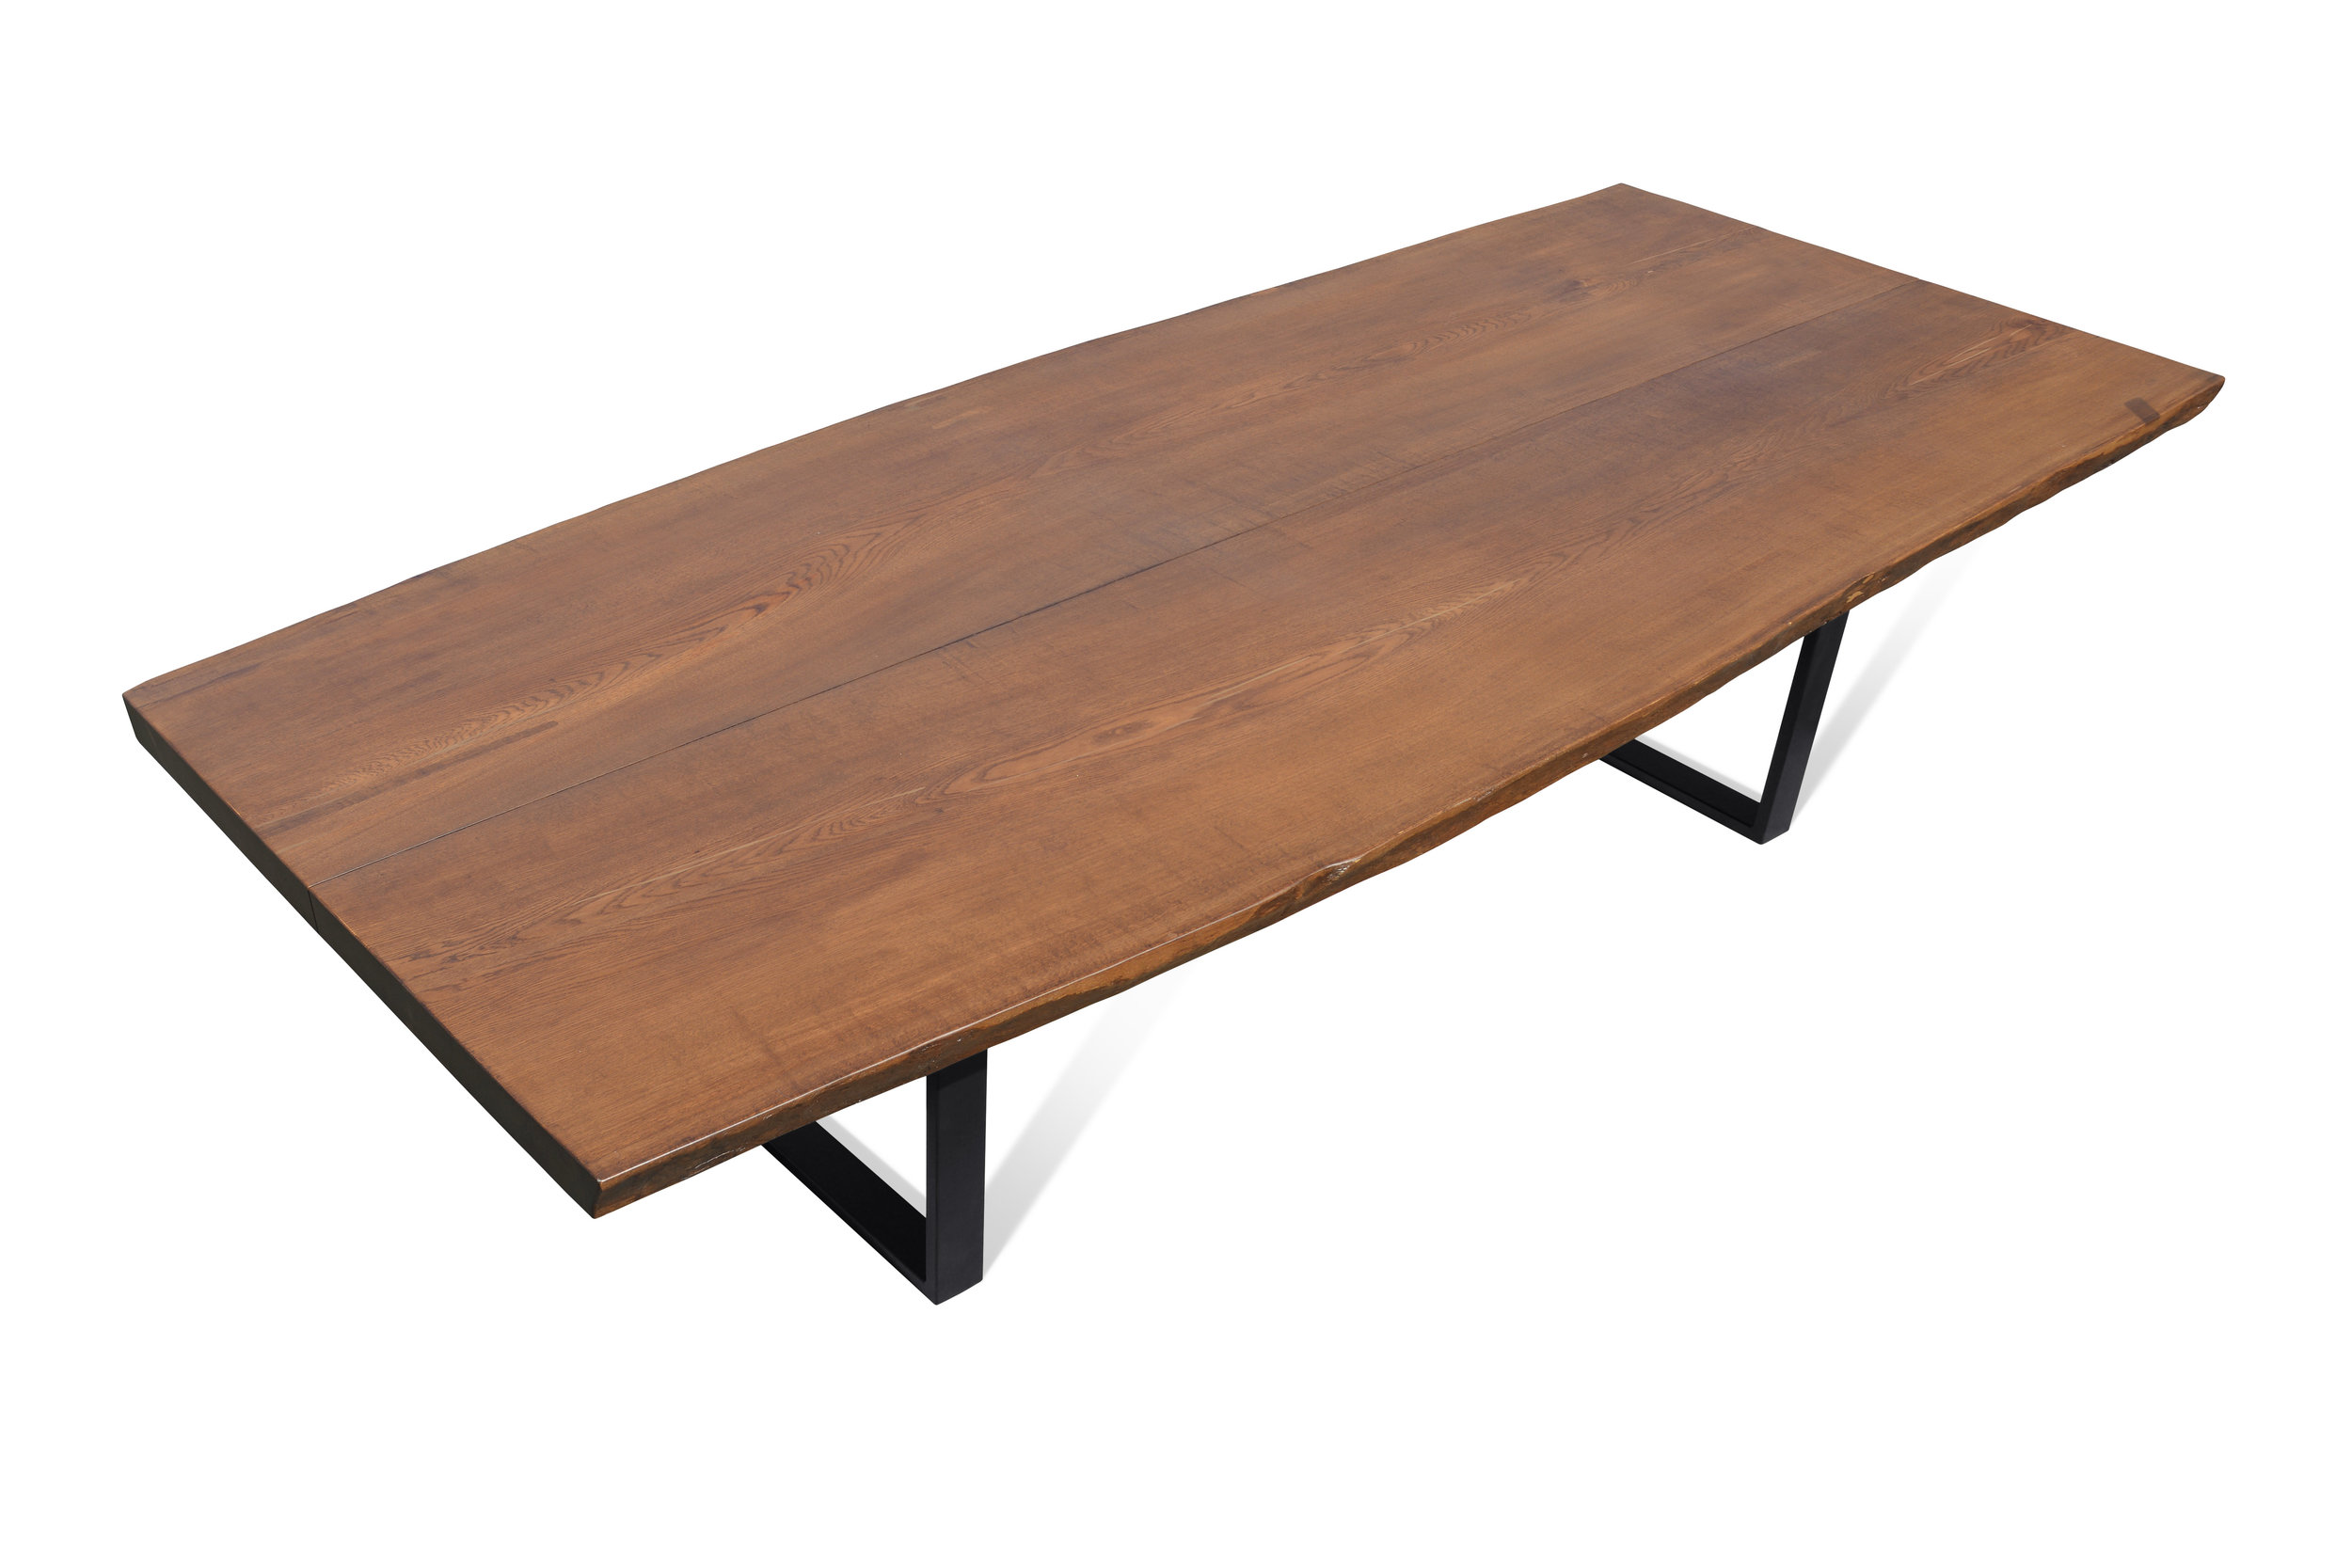 Etz & Steel Bond Live Edge Table Black Base 2.JPG